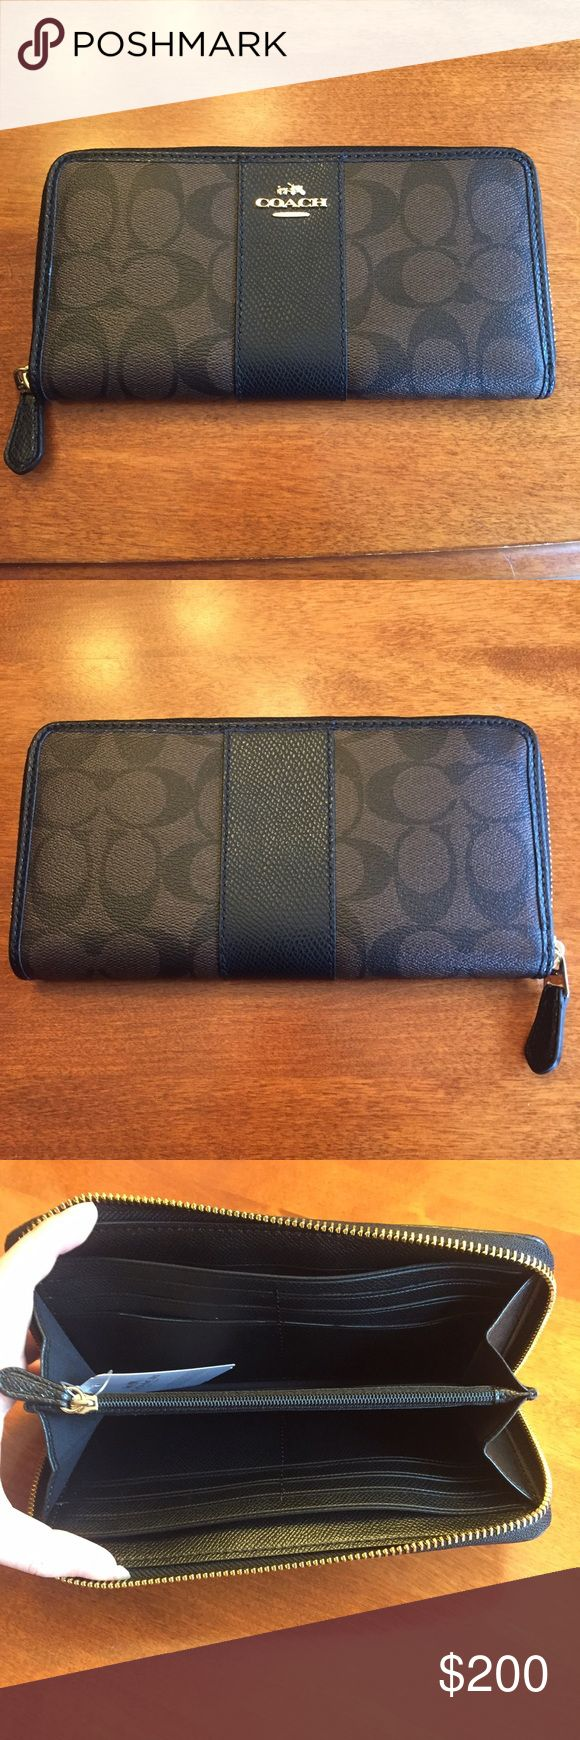 NWT COACH WALLET! NWT COACH WALLET! Authentic! Never used! Zip around wallet with dark brown canvas with C logo, black leather and gold hard ware! Lots of credit card slots, a zipper compartment and a place for dollars! Matching purse in separate listing! Beautiful piece that is super practical! Smoke free home! OPEN TO OFFERS Sorry no trades Coach Bags Wallets